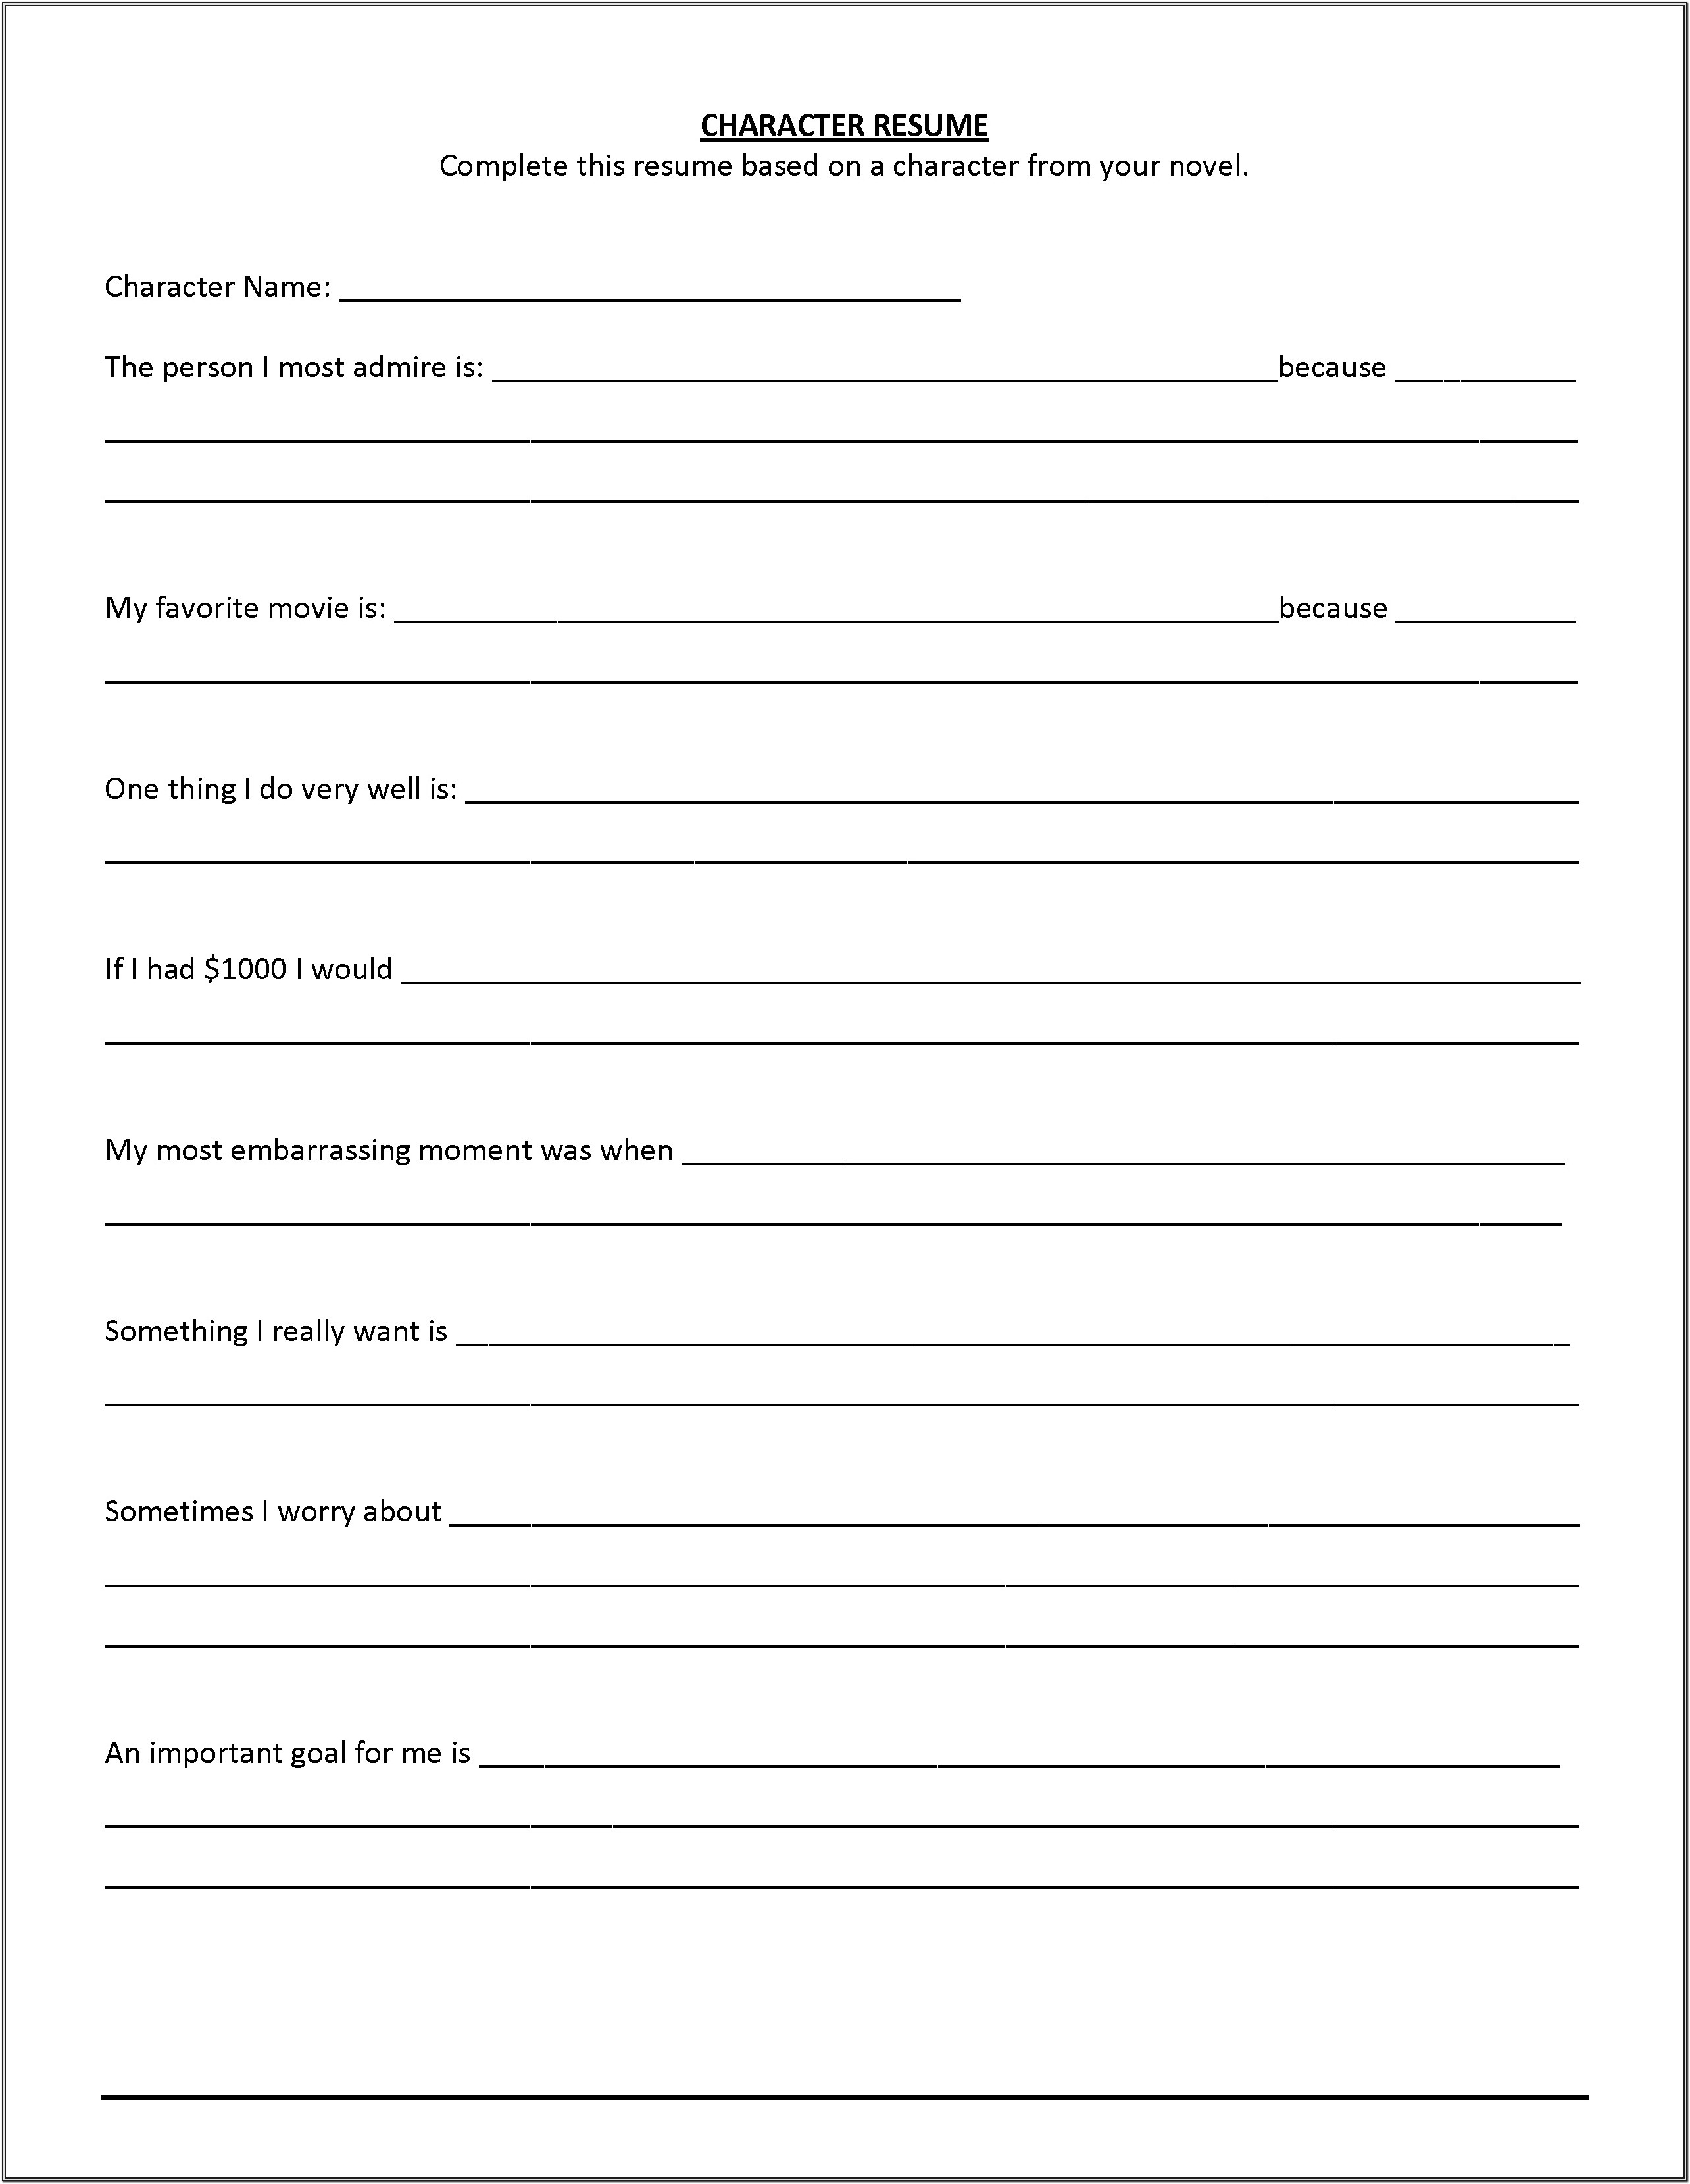 Blank Resume Forms To Print